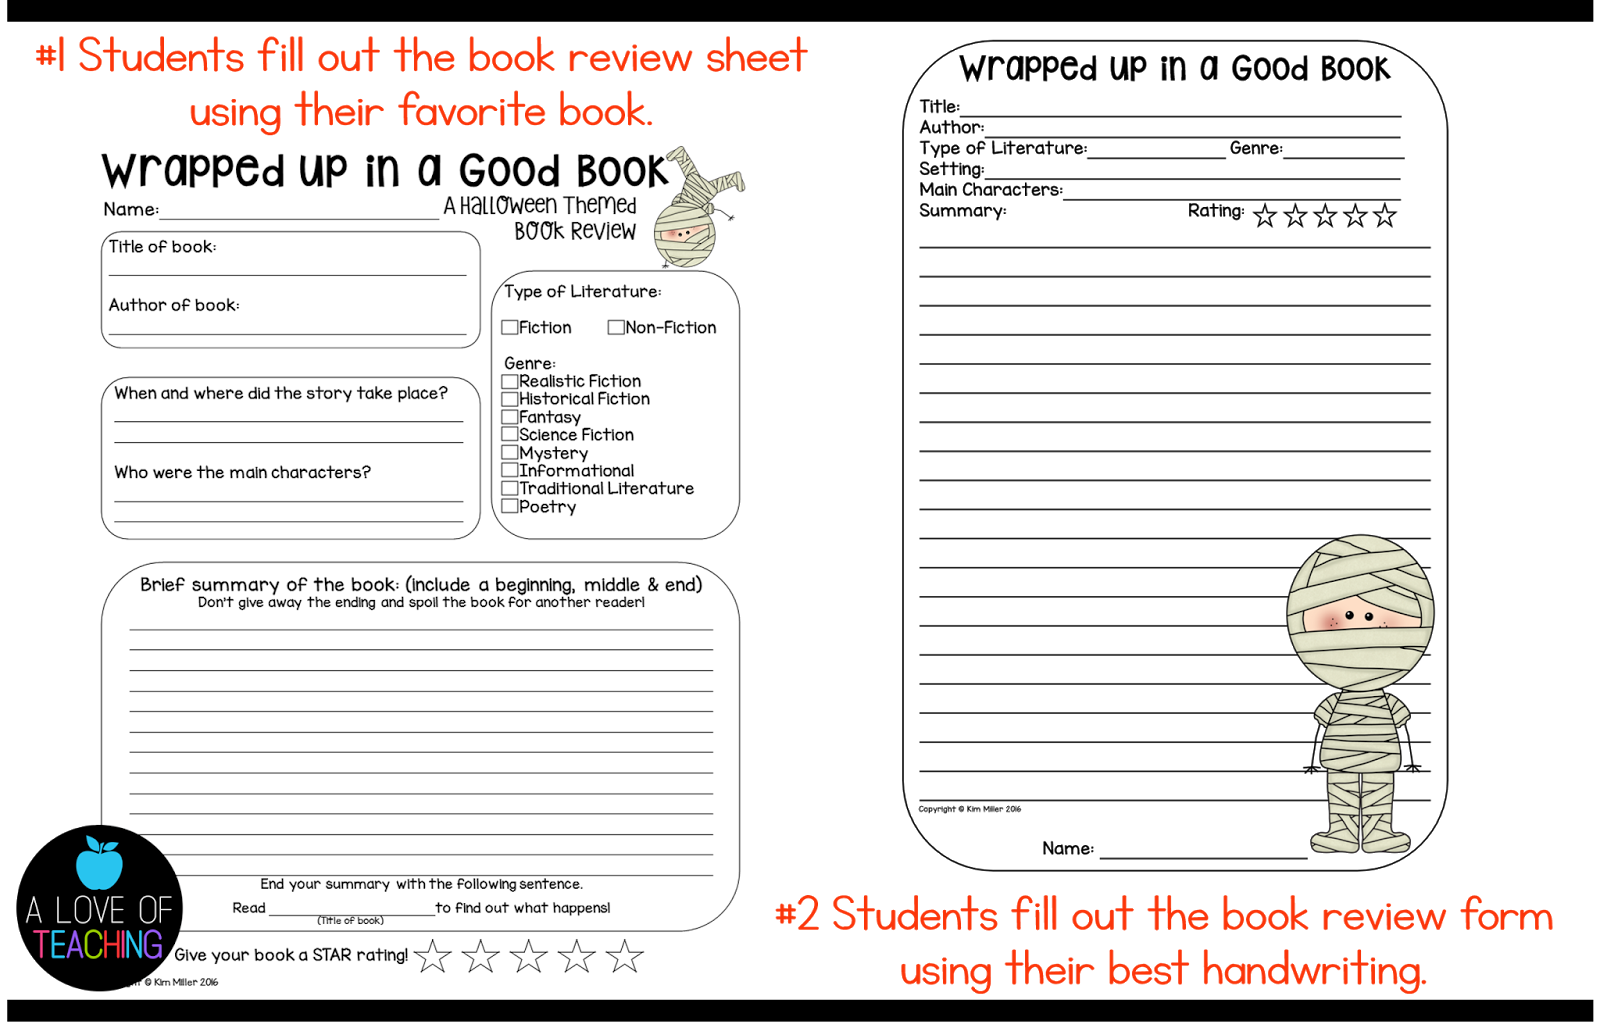 Halloween Book Reviews: Free Download! – A Love of Teaching